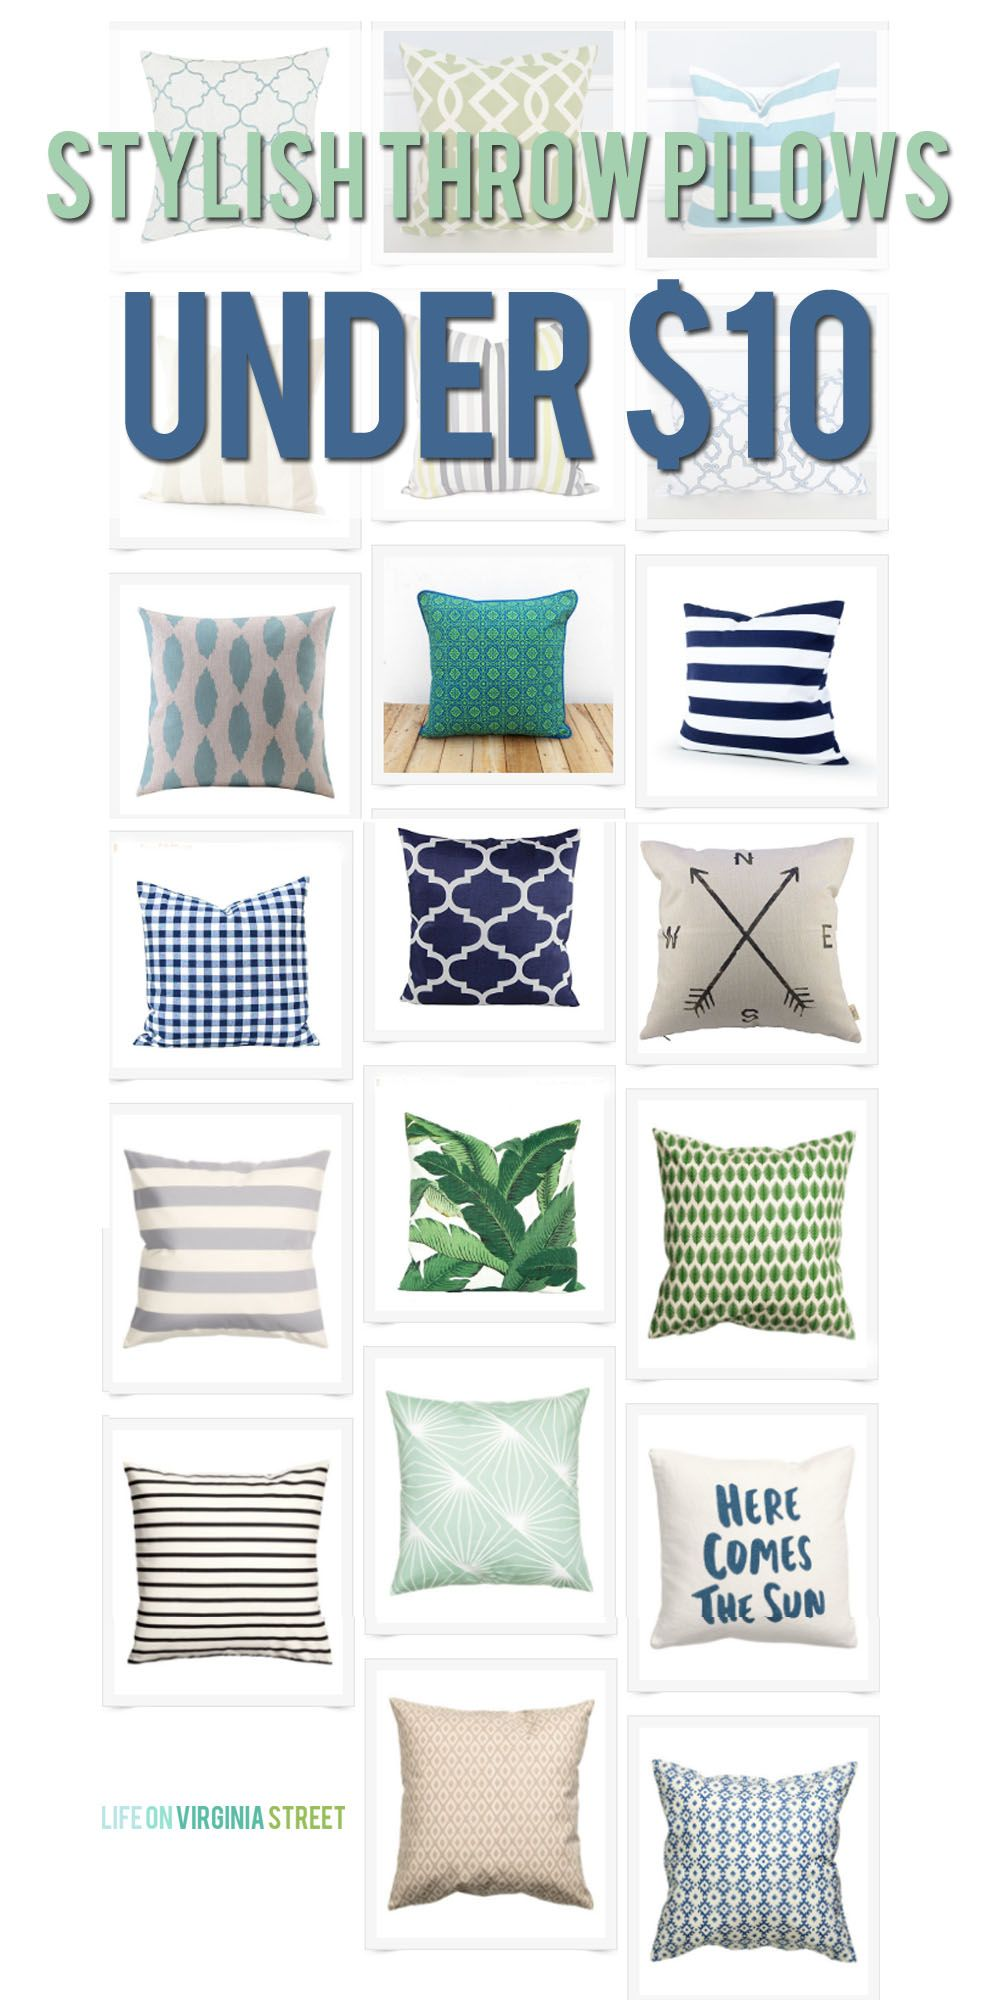 Cheap Decorative Pillows Under $10 Brilliant Stylish Throw Pillows For Under $10  Throw Pillows Virginia And Decorating Inspiration